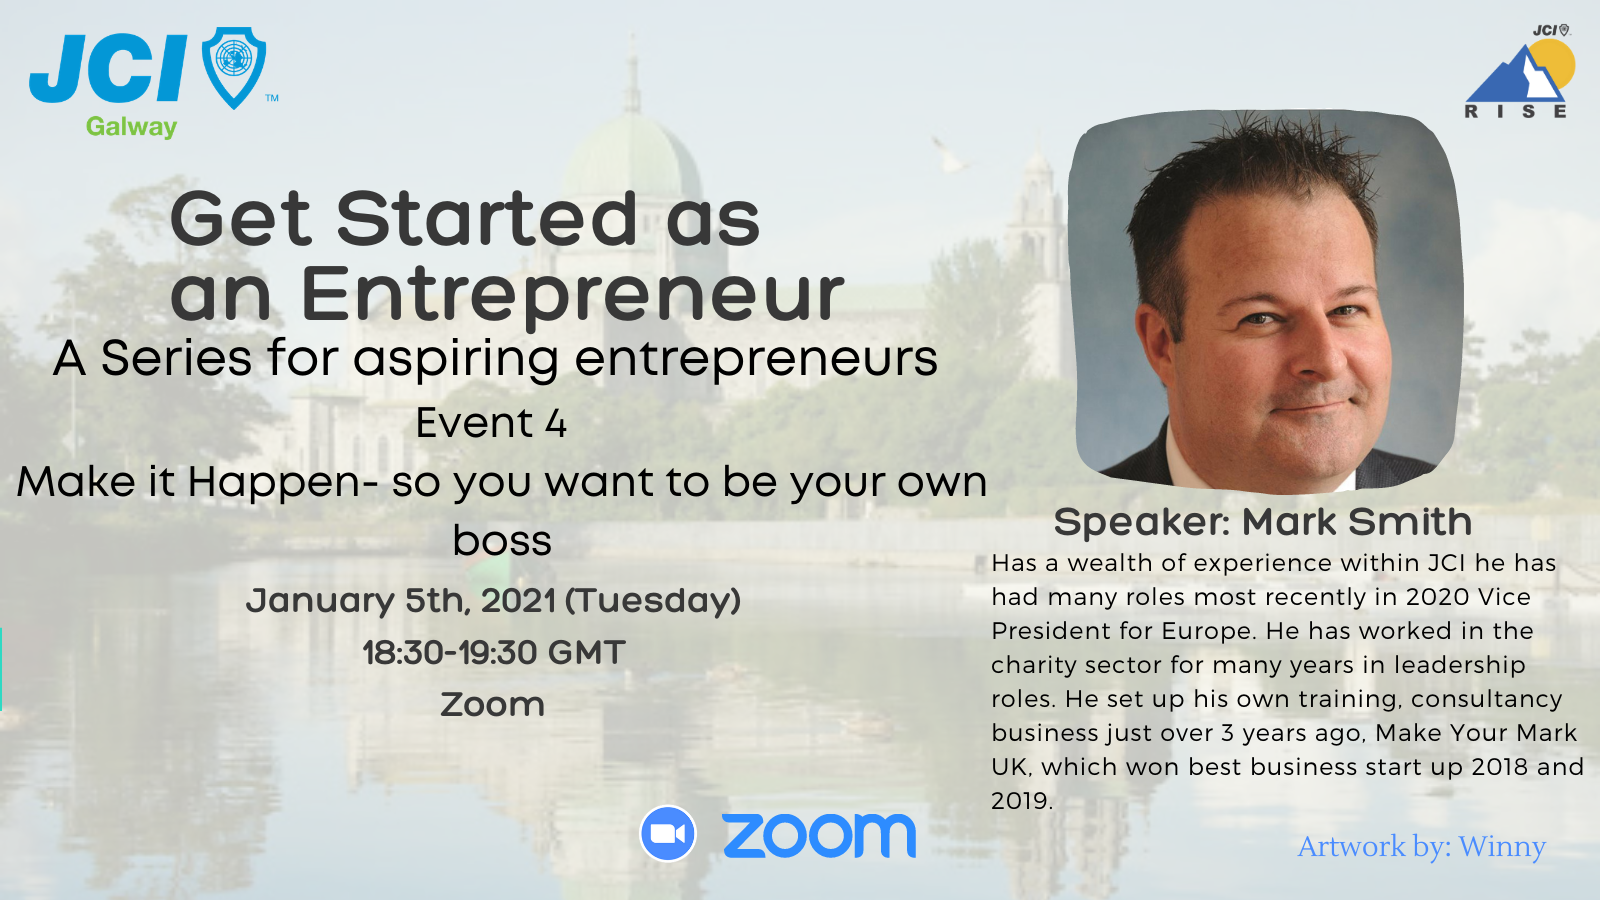 Get Started as an Entrepreneur Series - 4: Make it Happen, you want to be your own boss